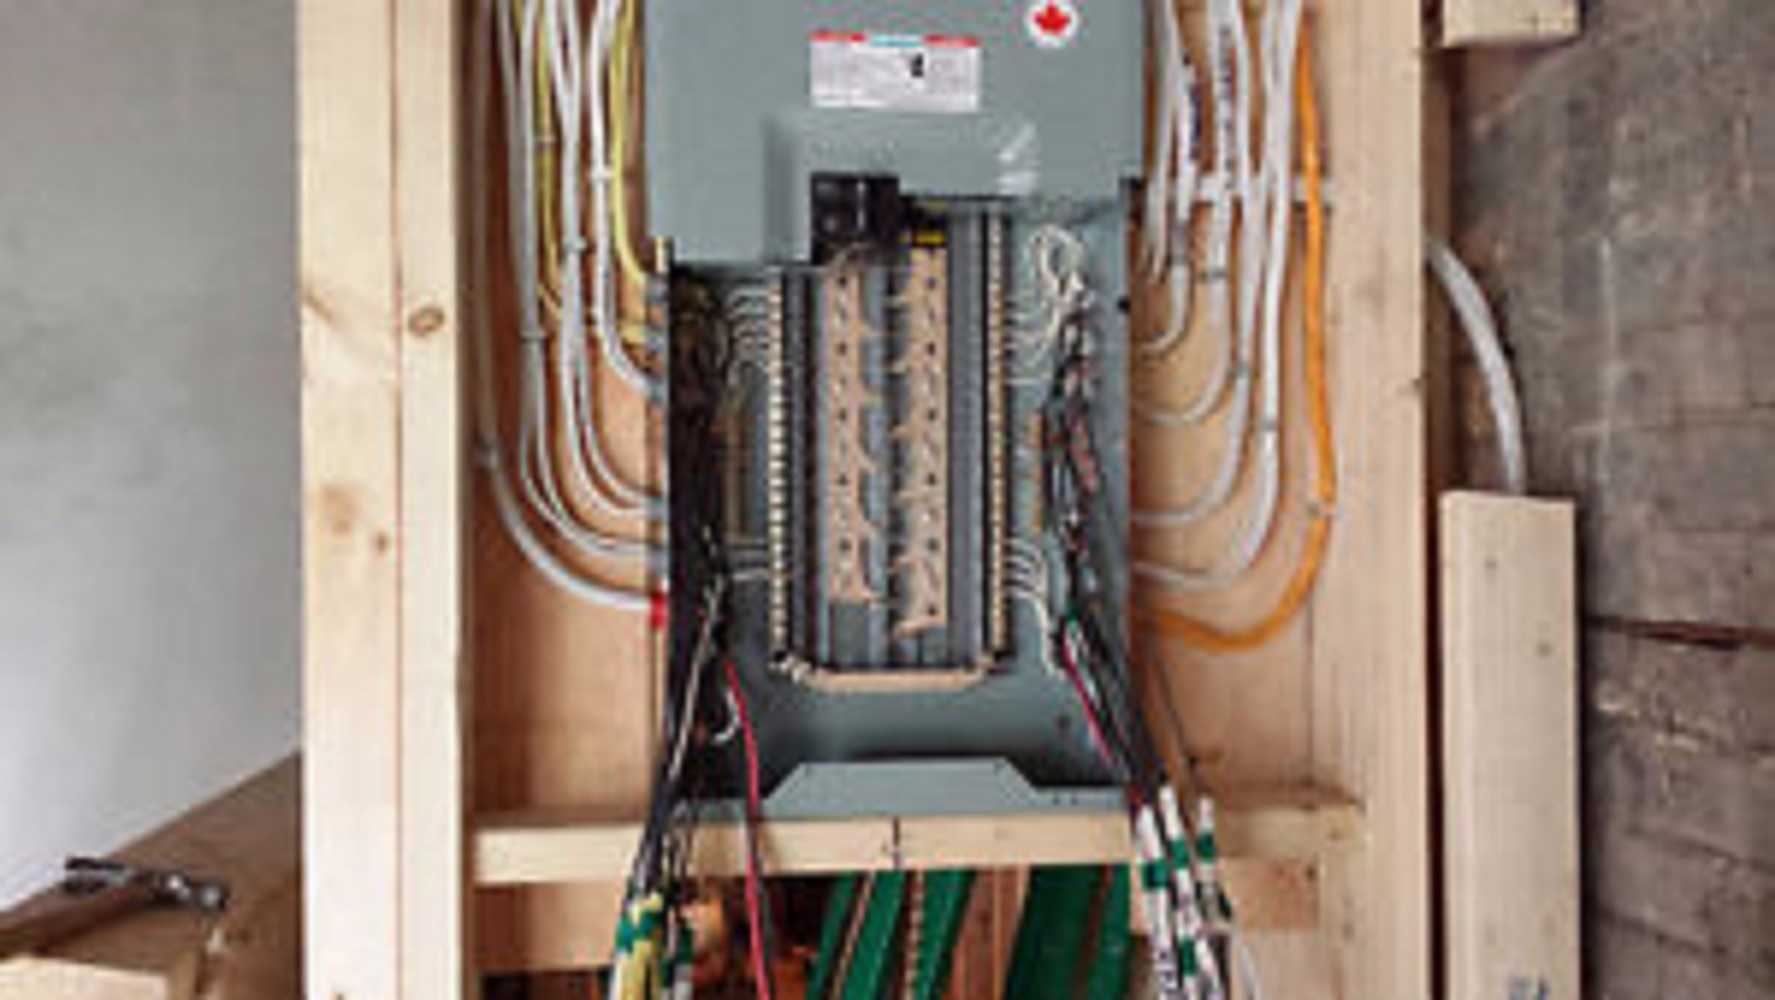 Toronto Sun Classifieds Services Electrician Apprentice Troubleshooting House Wiring Electrical Problem Give Us A Call We Can Help You All Power Cover Installation New Kitchen Renovation